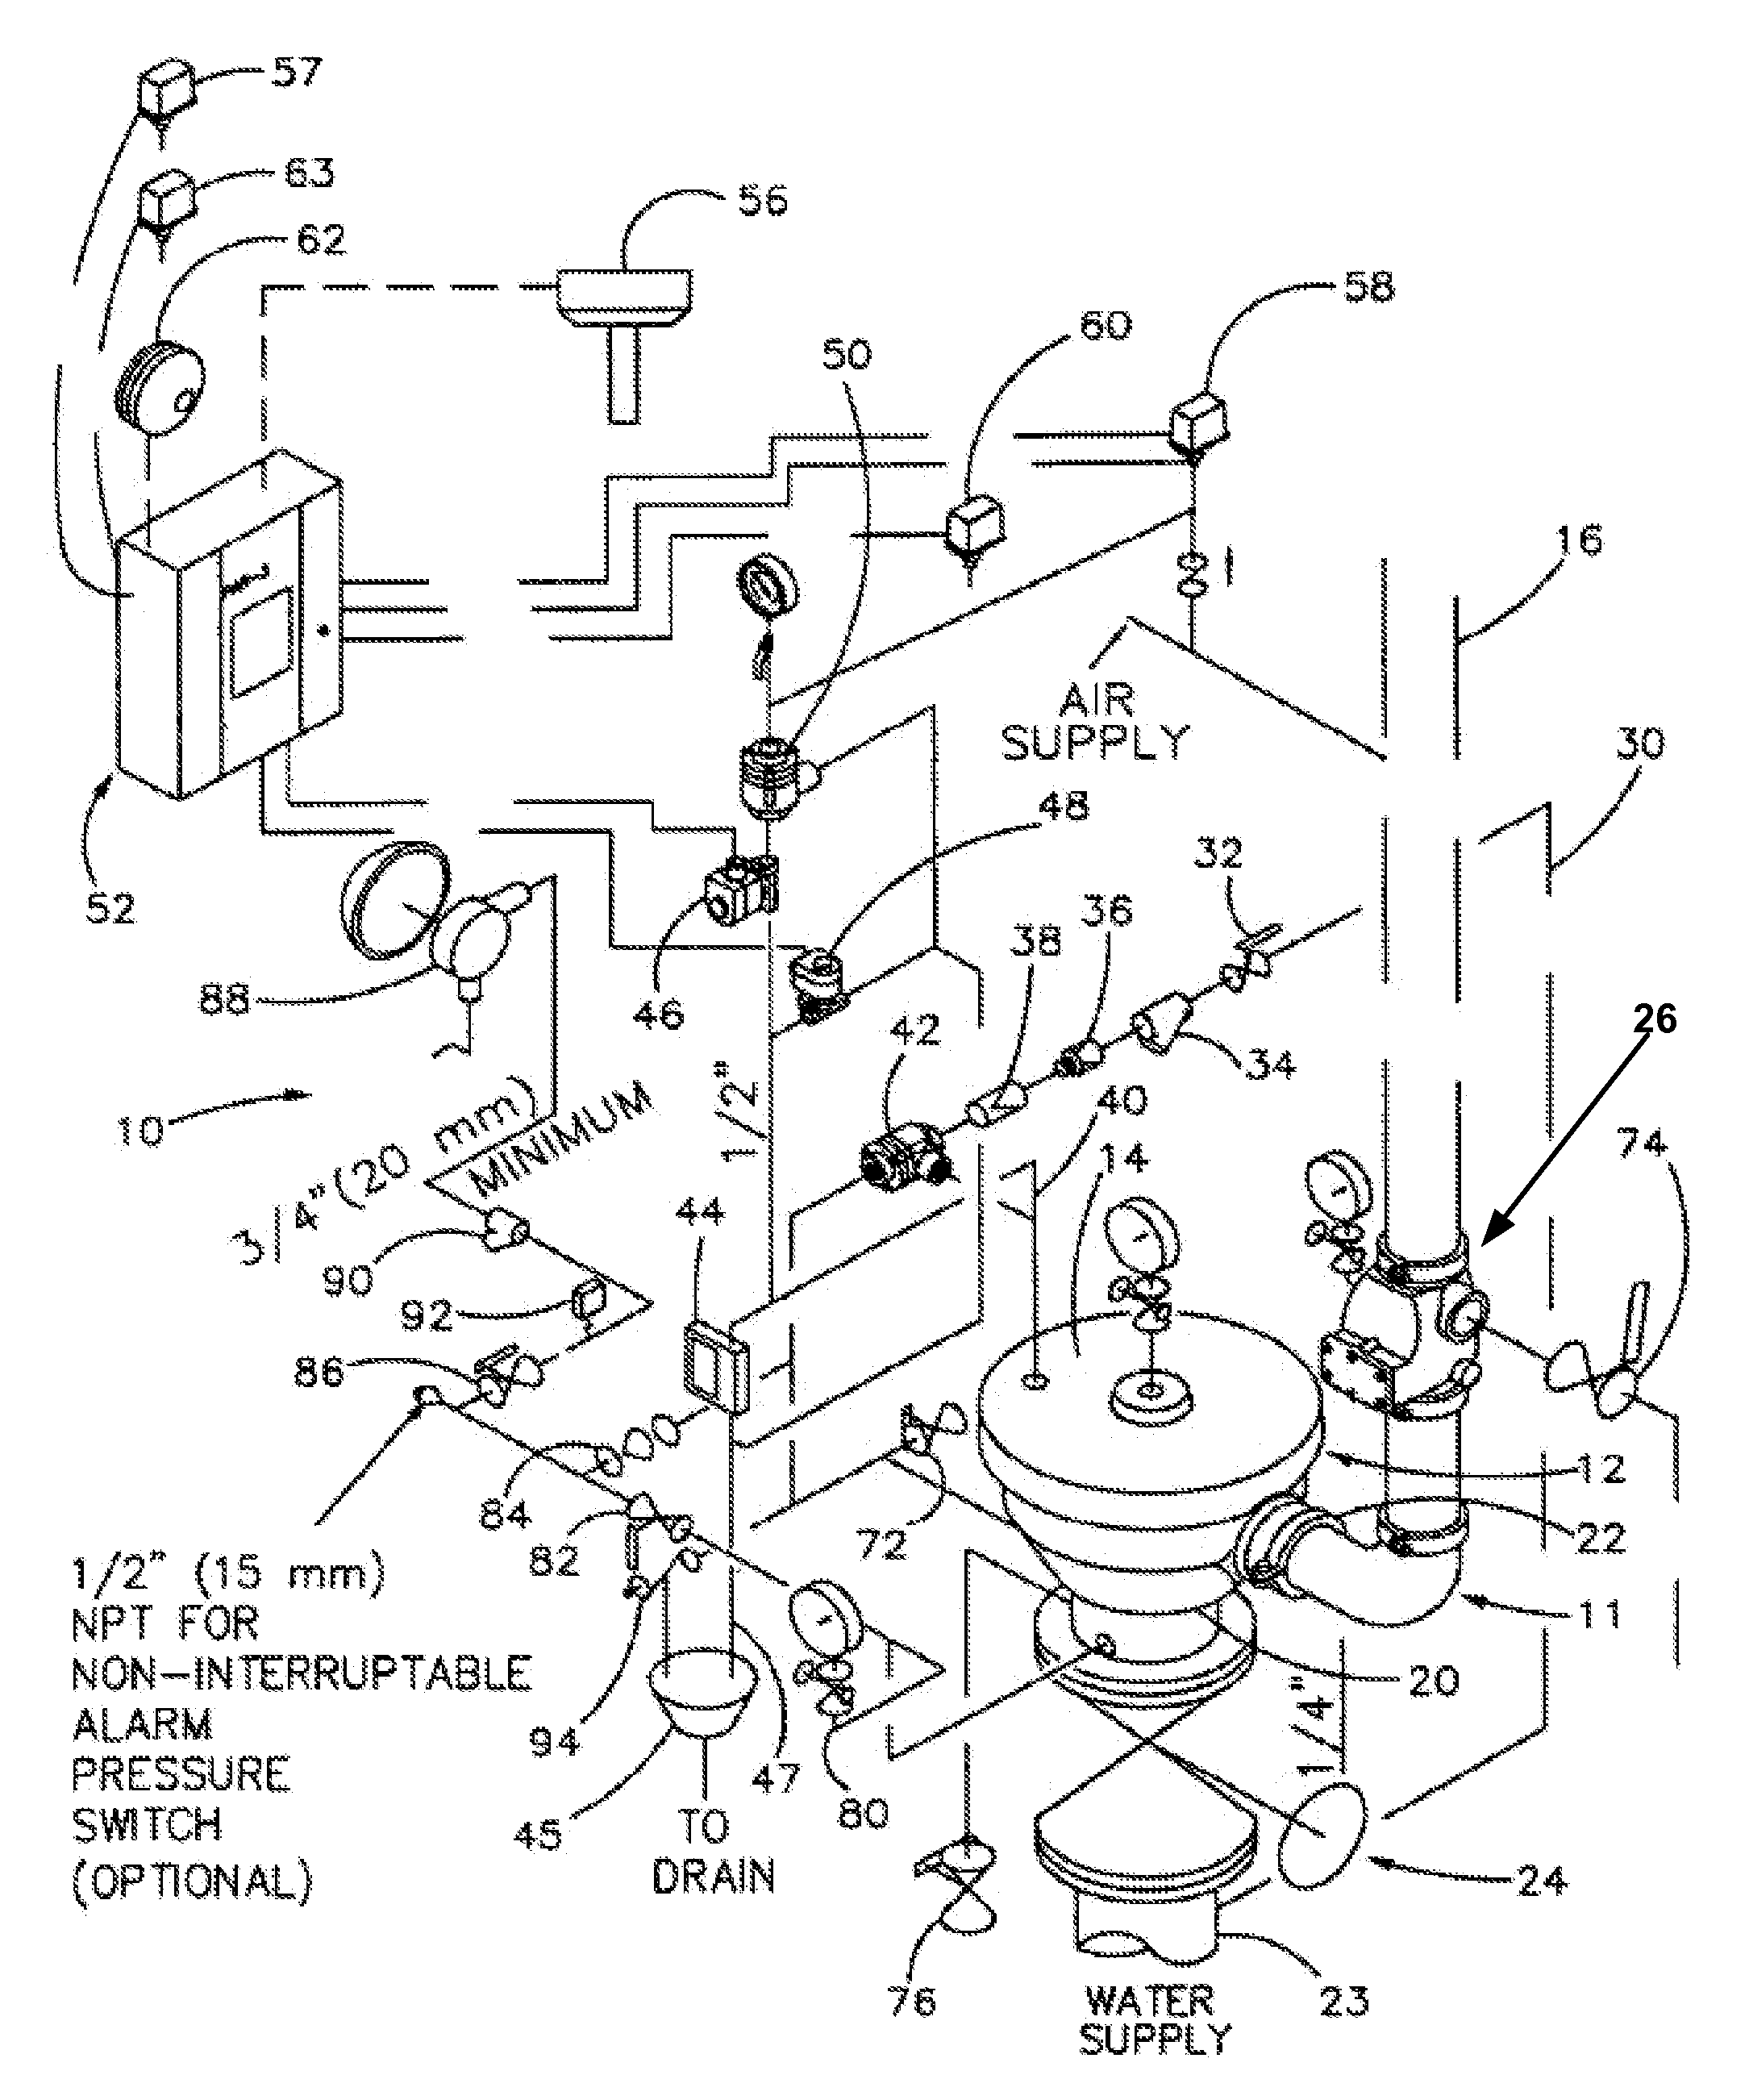 patent us7185711 - fire protection system